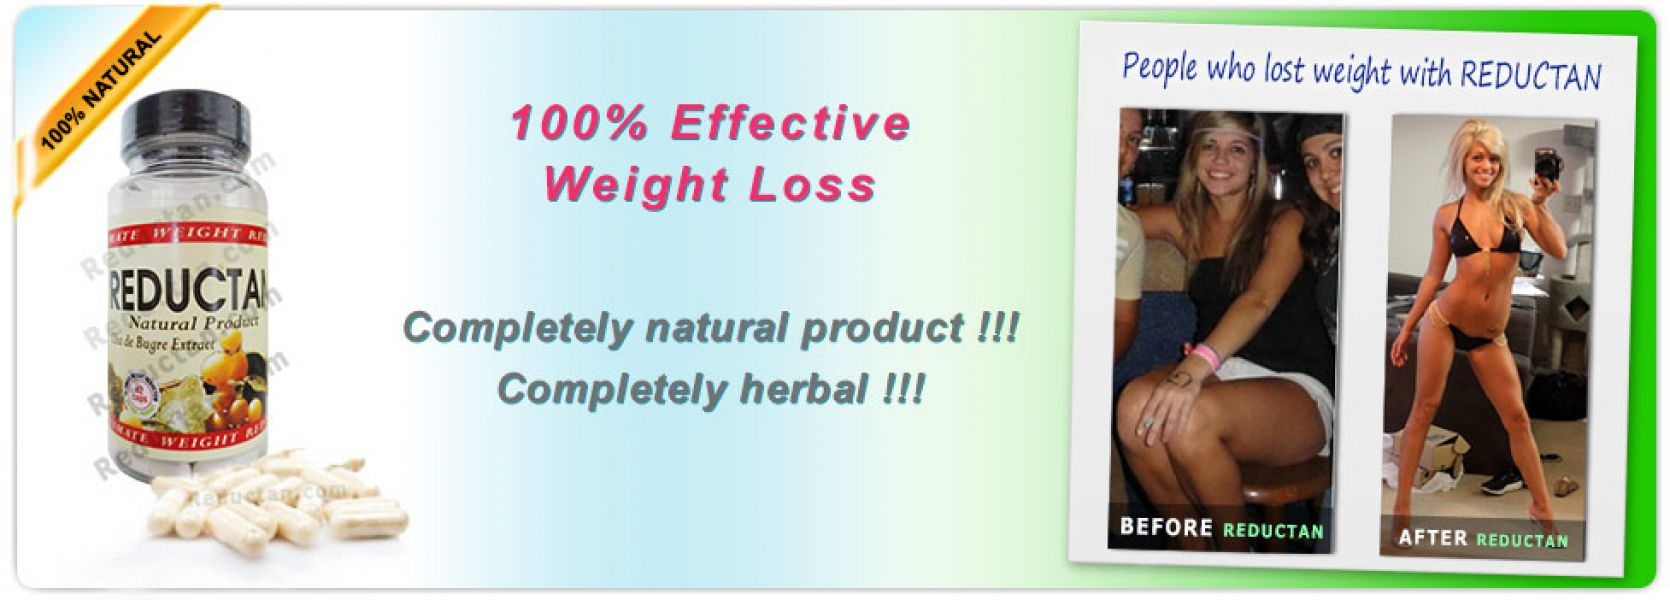 Lose weight effectively with unique product - Reductan